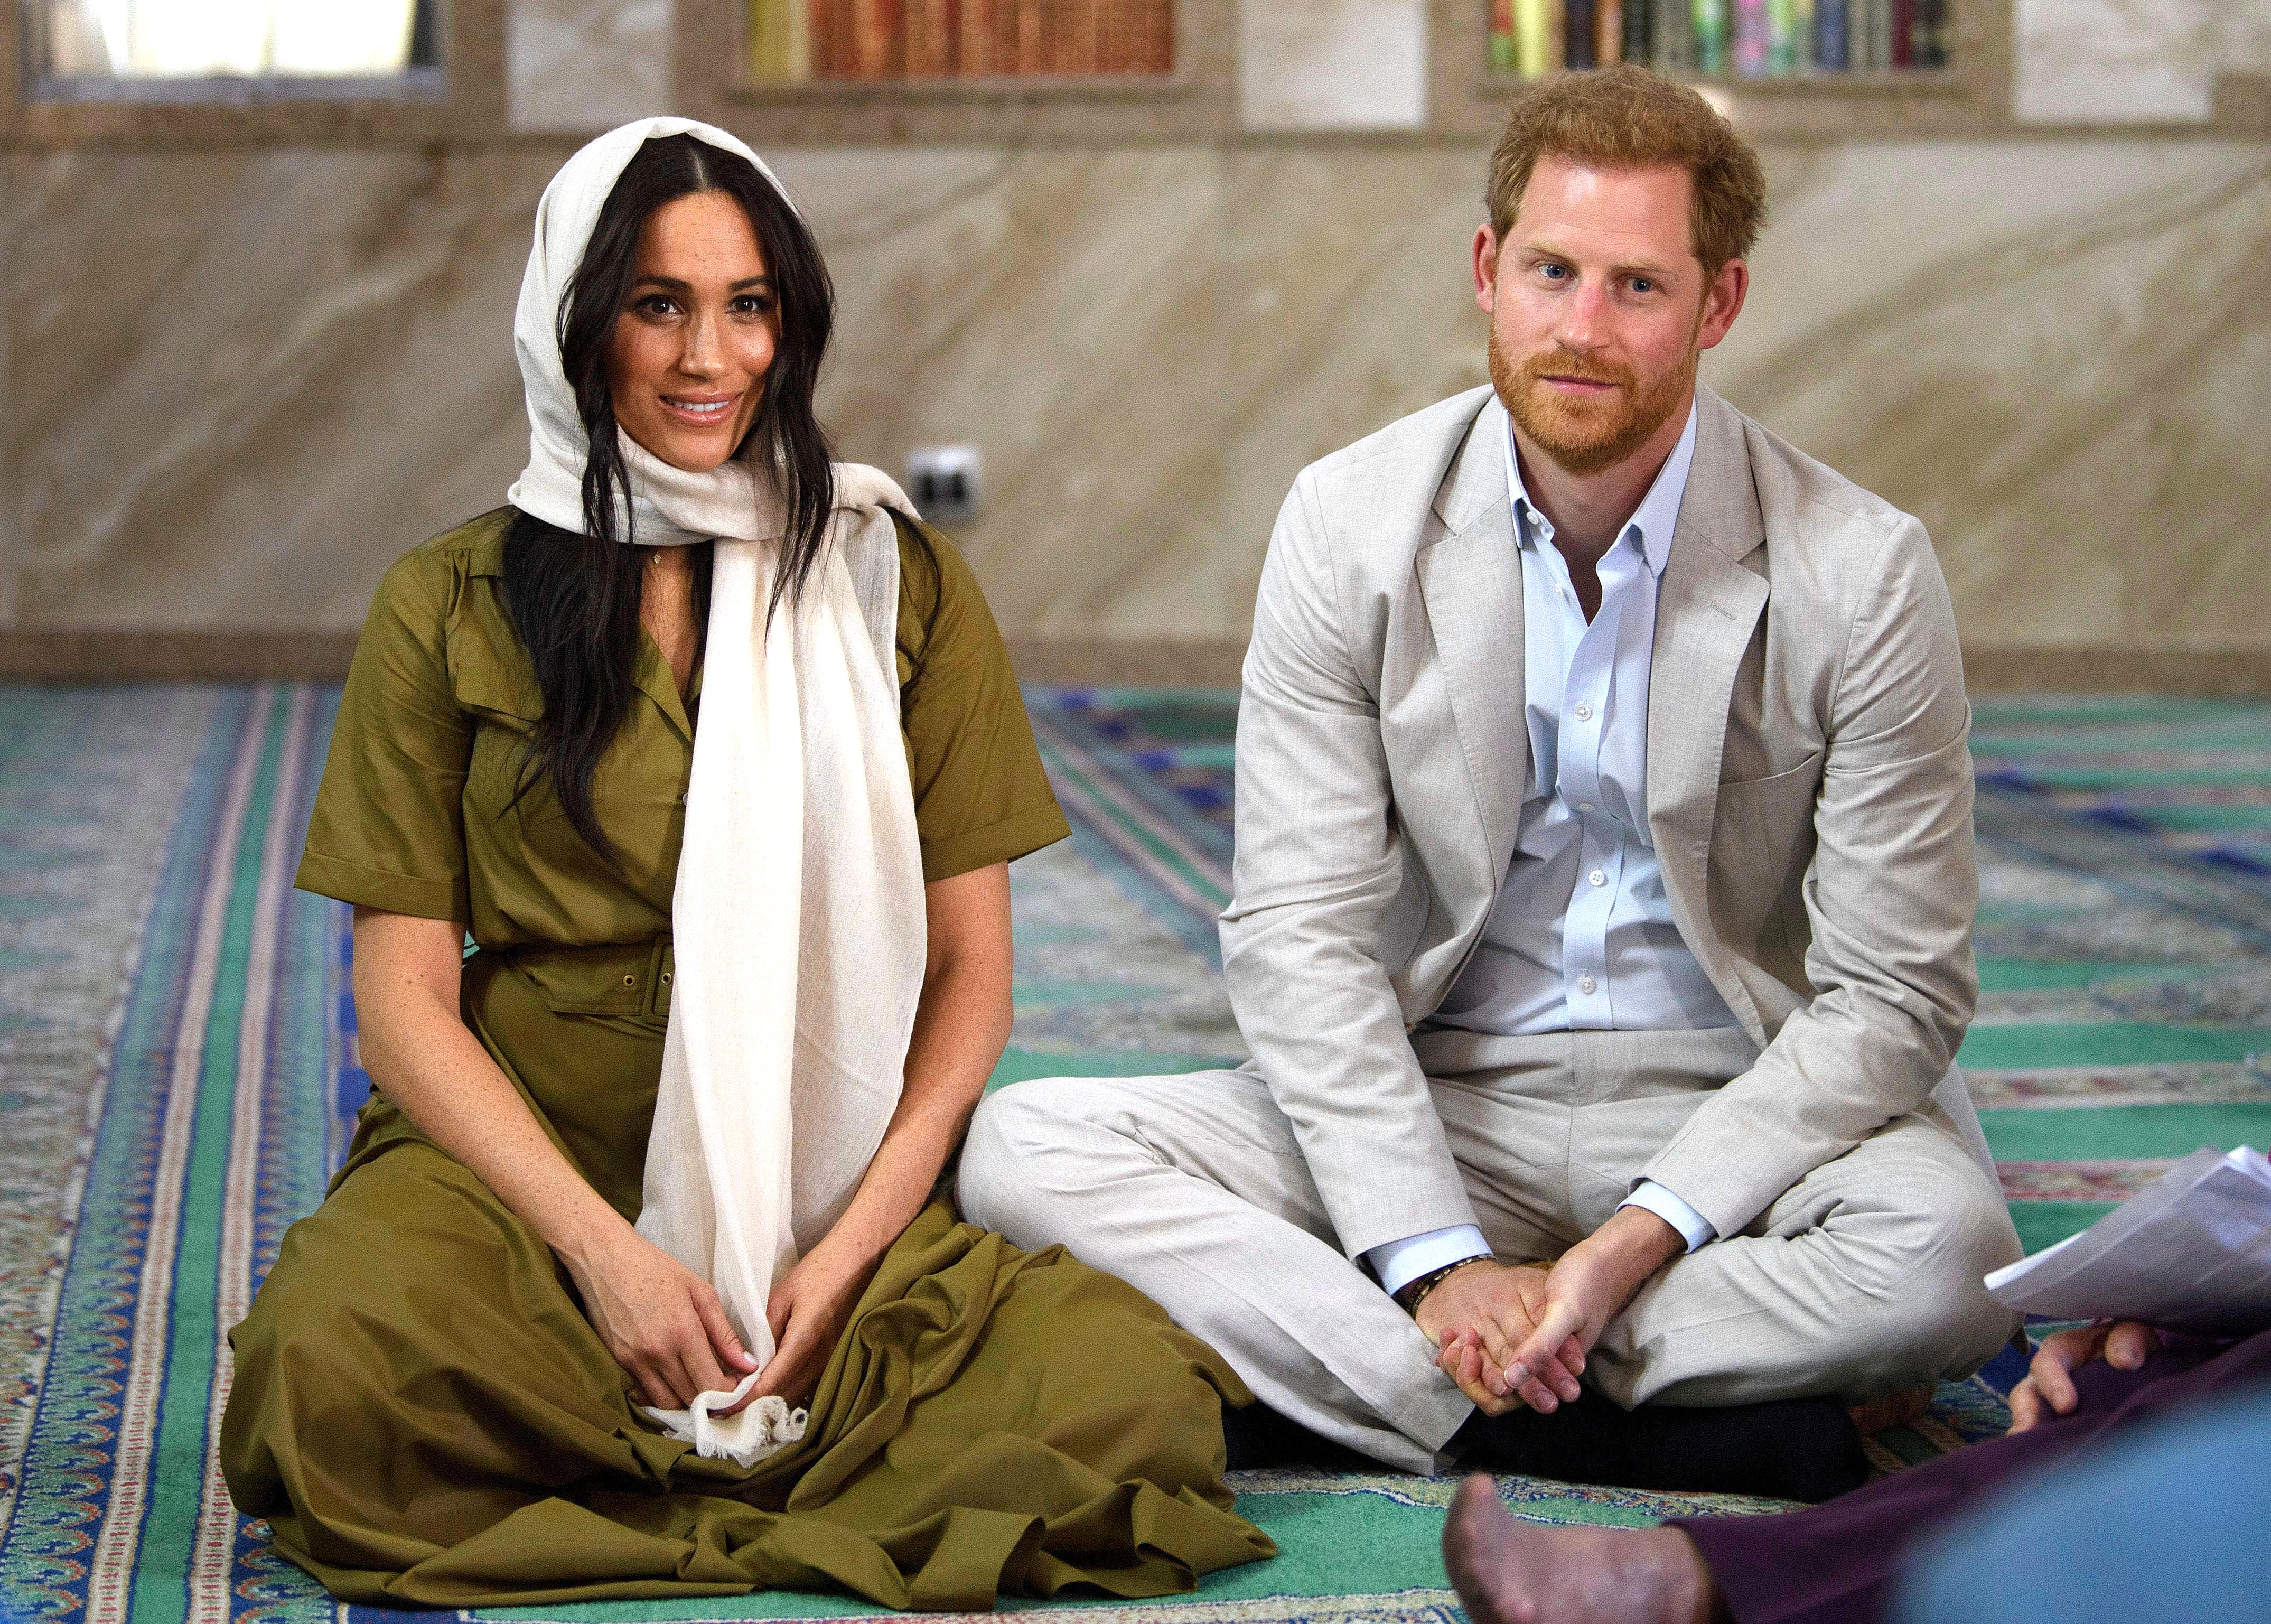 Meghan and Harry visited Auwal Mosque, the country's oldest masjid, on Tuesday during their royal tour of South Africa